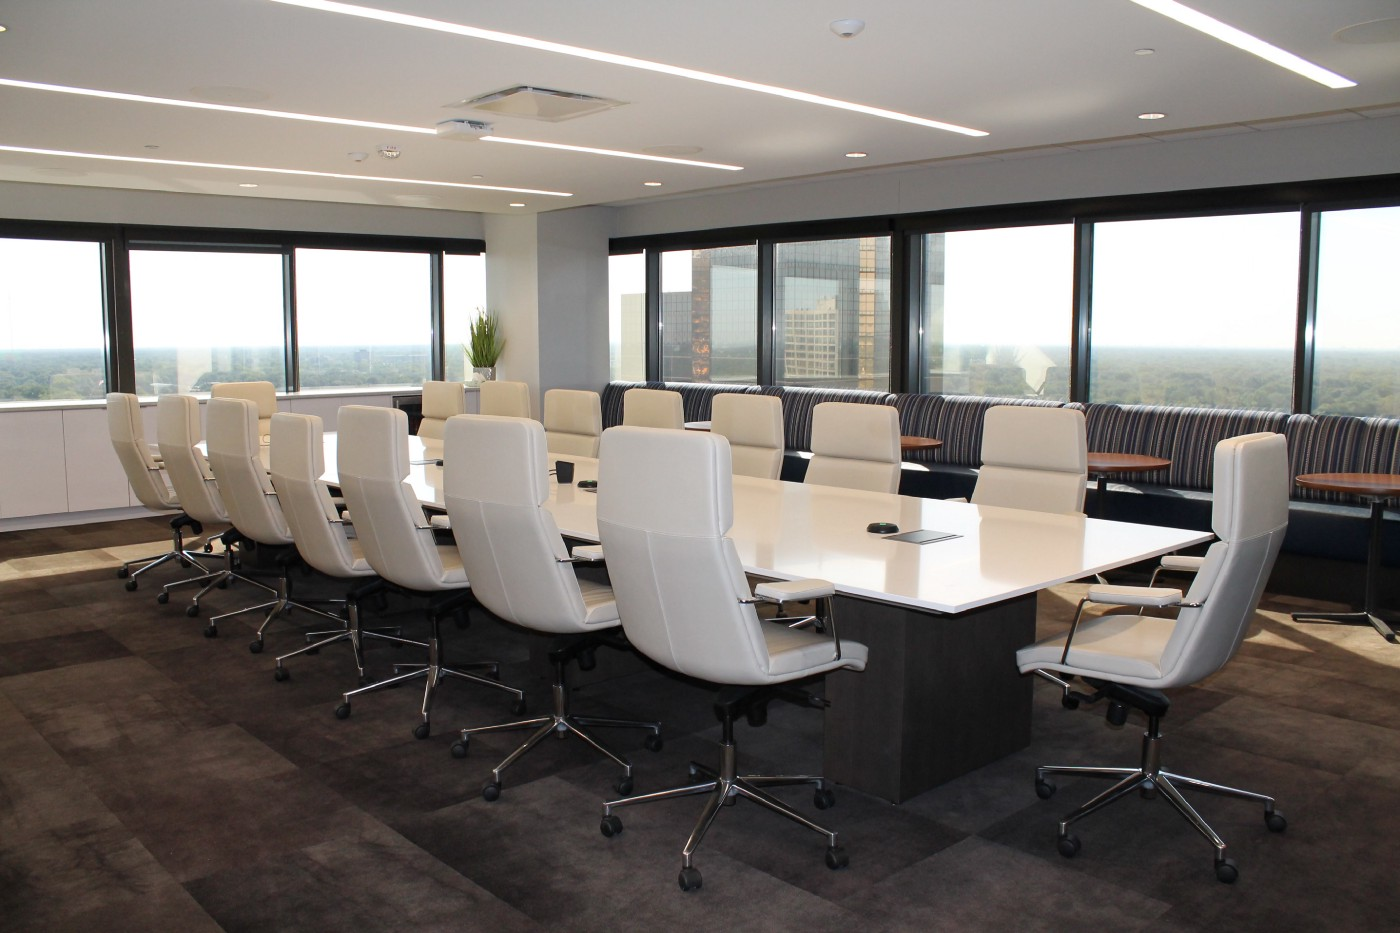 Boardroom inside sky scraper with lots of windows and white furniture, table and 15 chairs